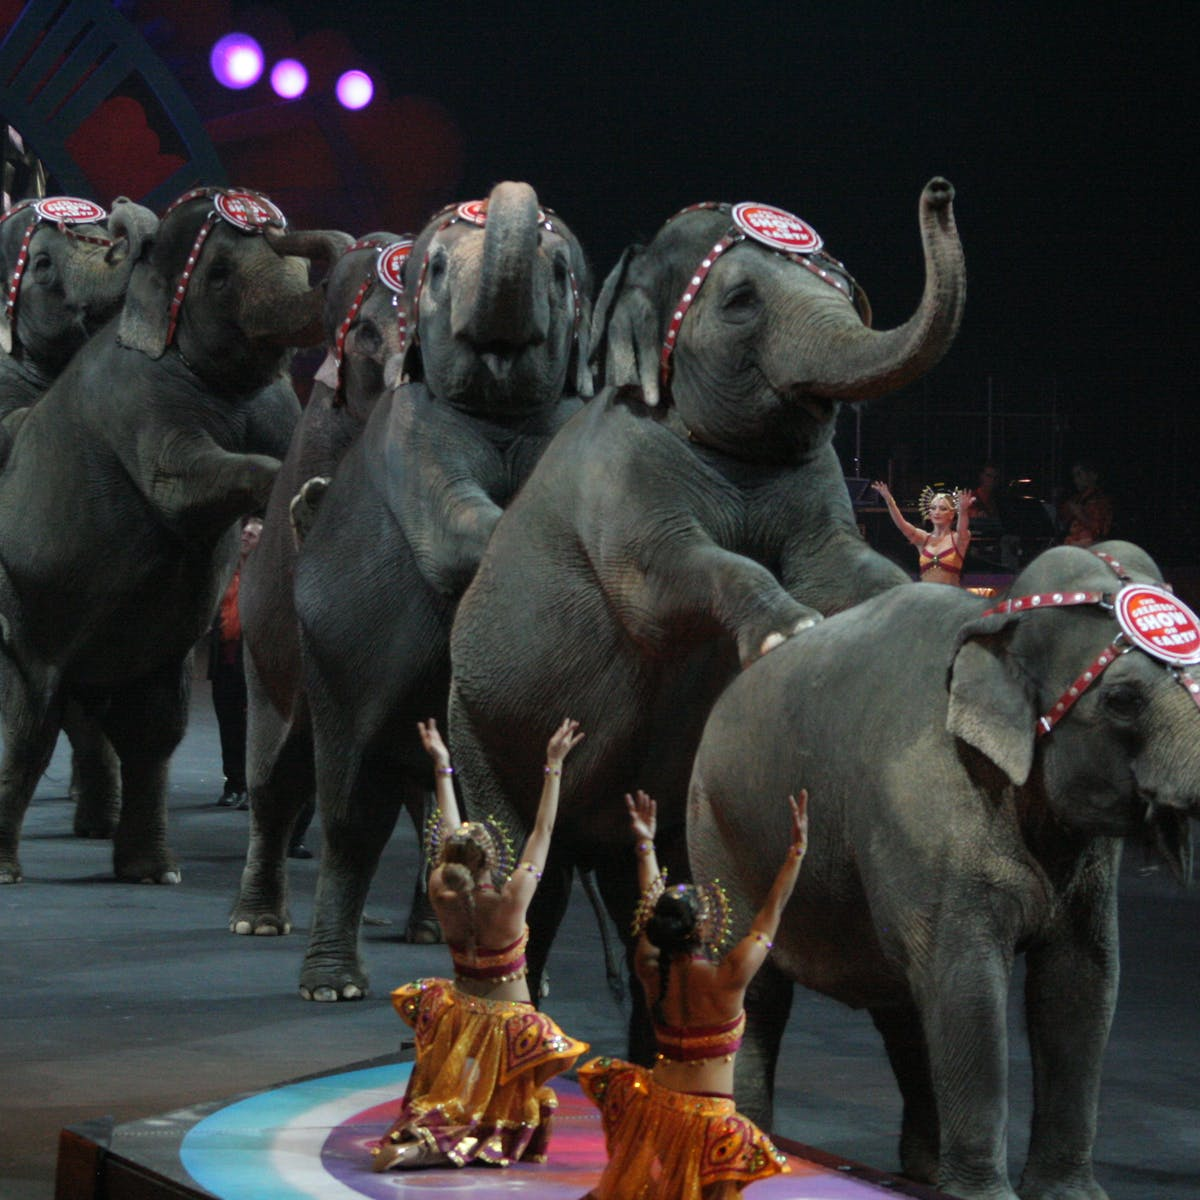 Ringling Bros  Circus shutdown is a distraction from the real issue